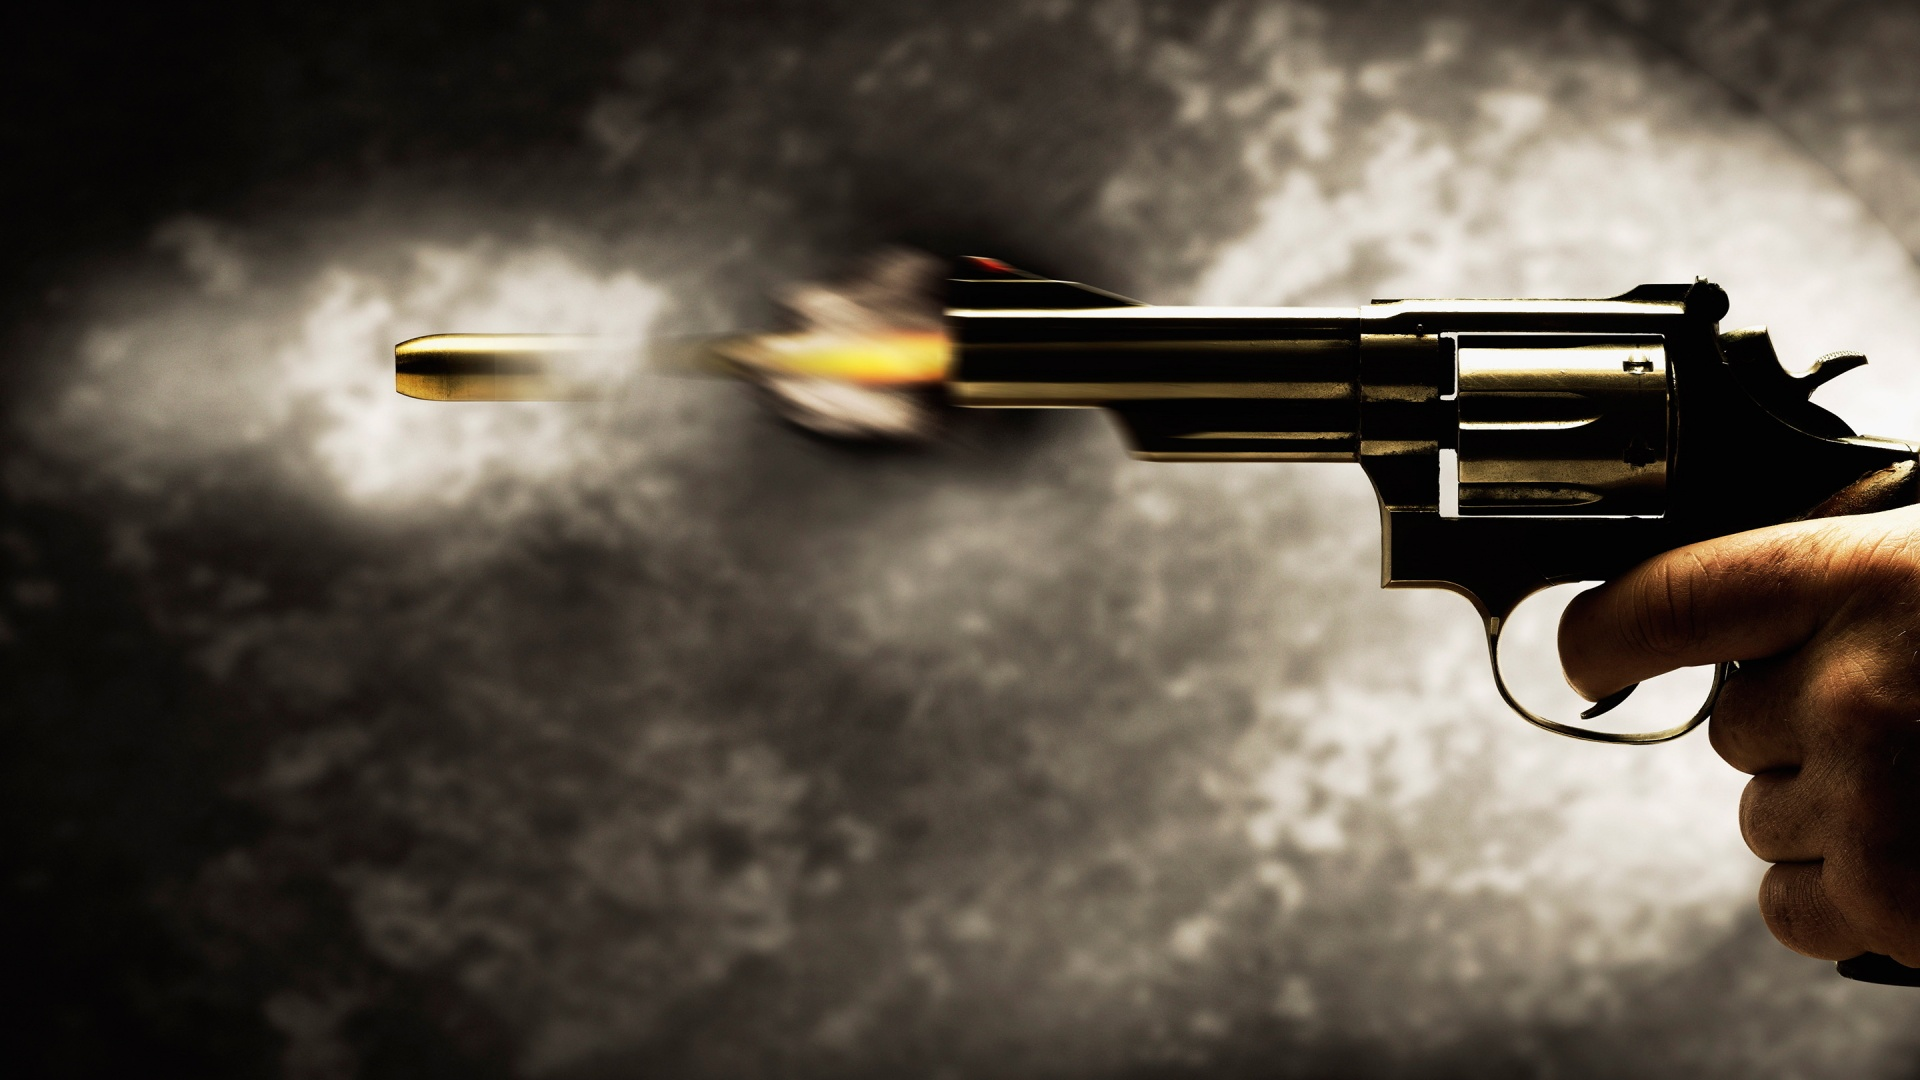 fantastic bullet wallpaper 42232